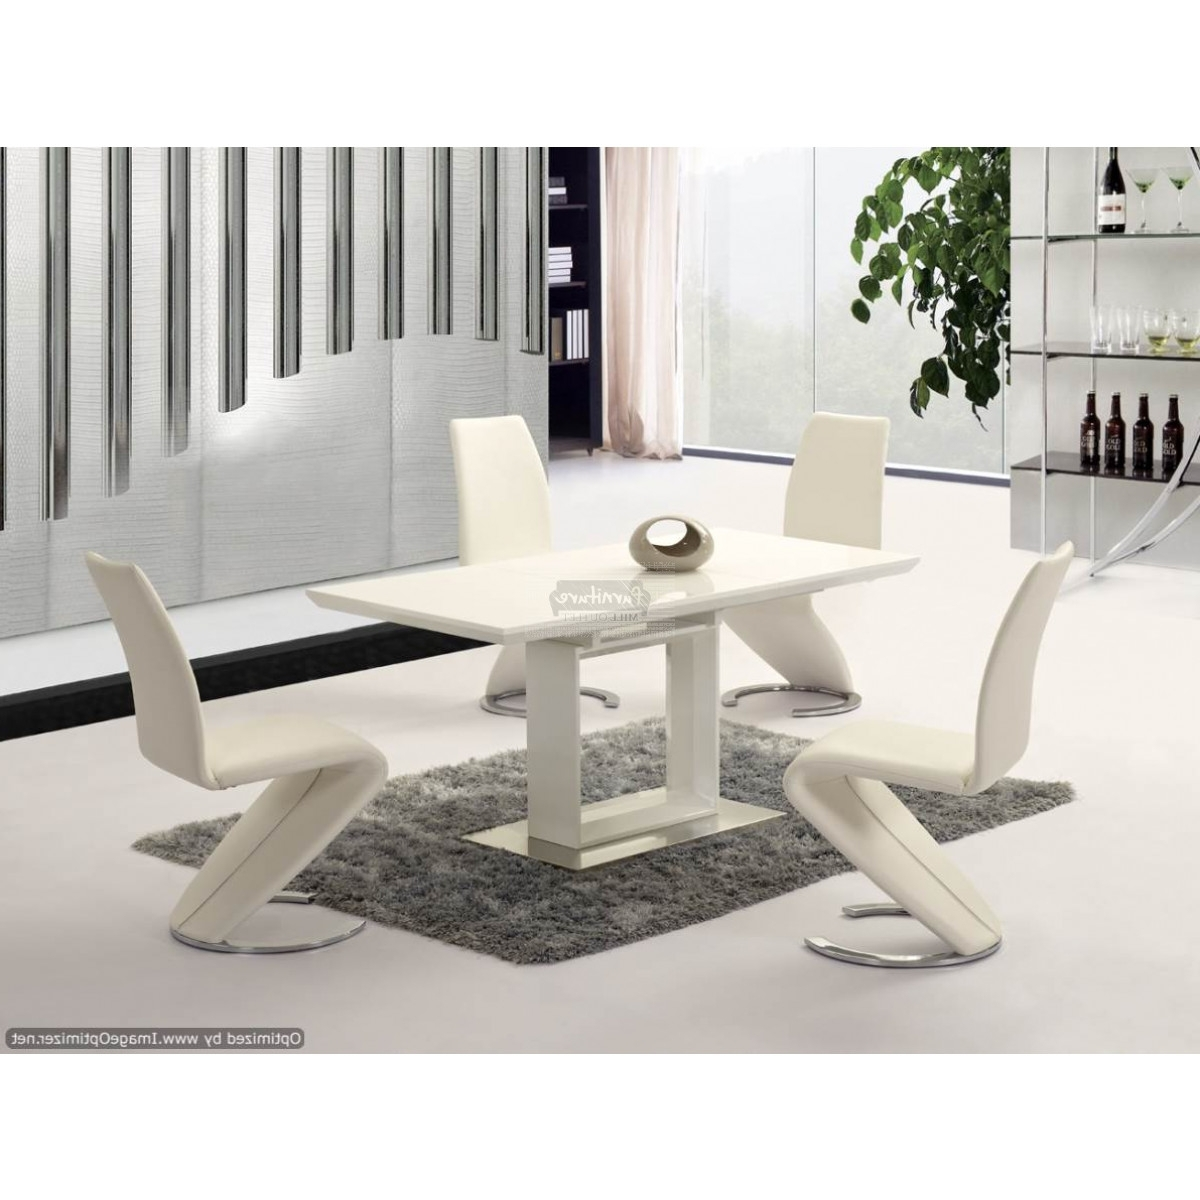 White High Gloss Dining Tables And Chairs Within Widely Used Space White High Gloss Extending Dining Table – 120Cm To 160Cm (View 23 of 25)